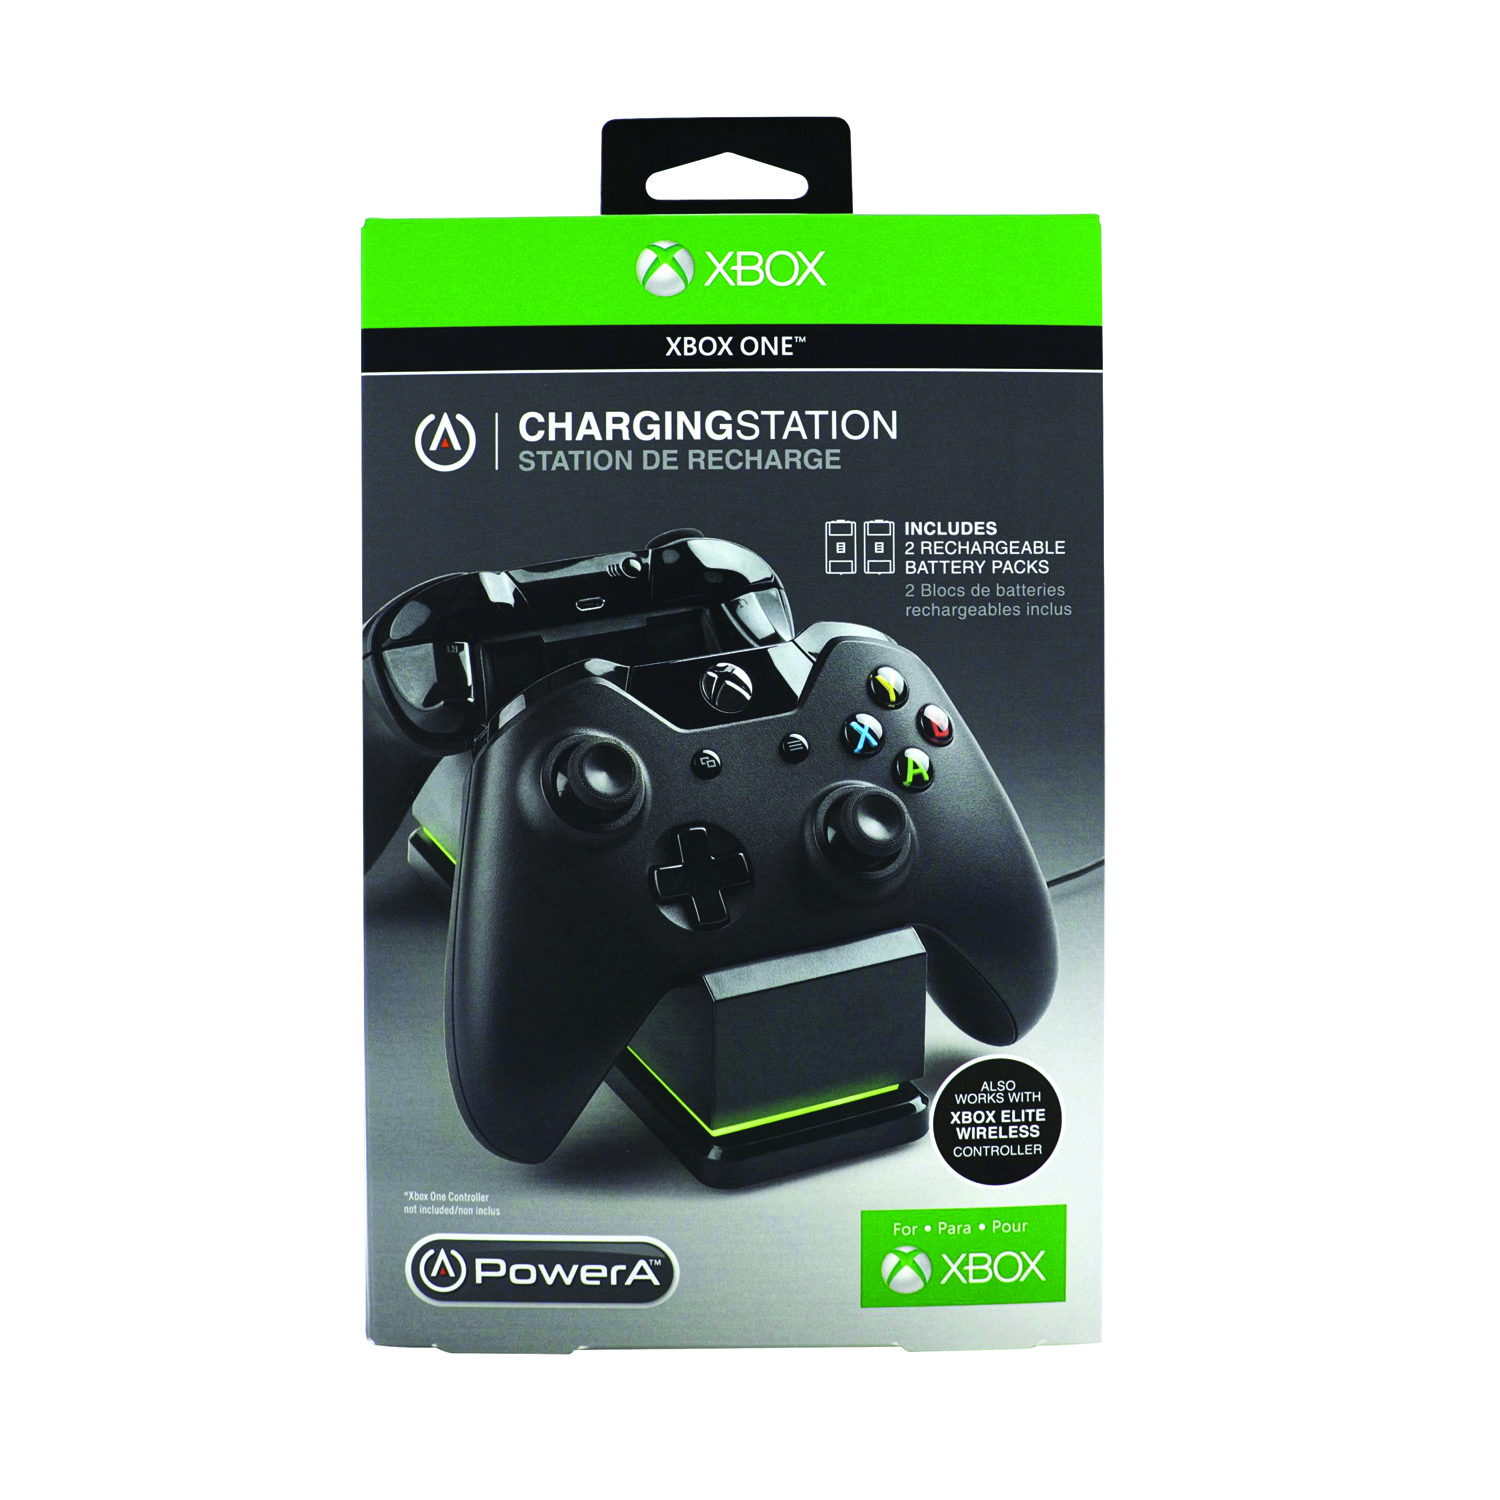 hight resolution of powera charging station for xbox one black cpfa114326 02 walmart com